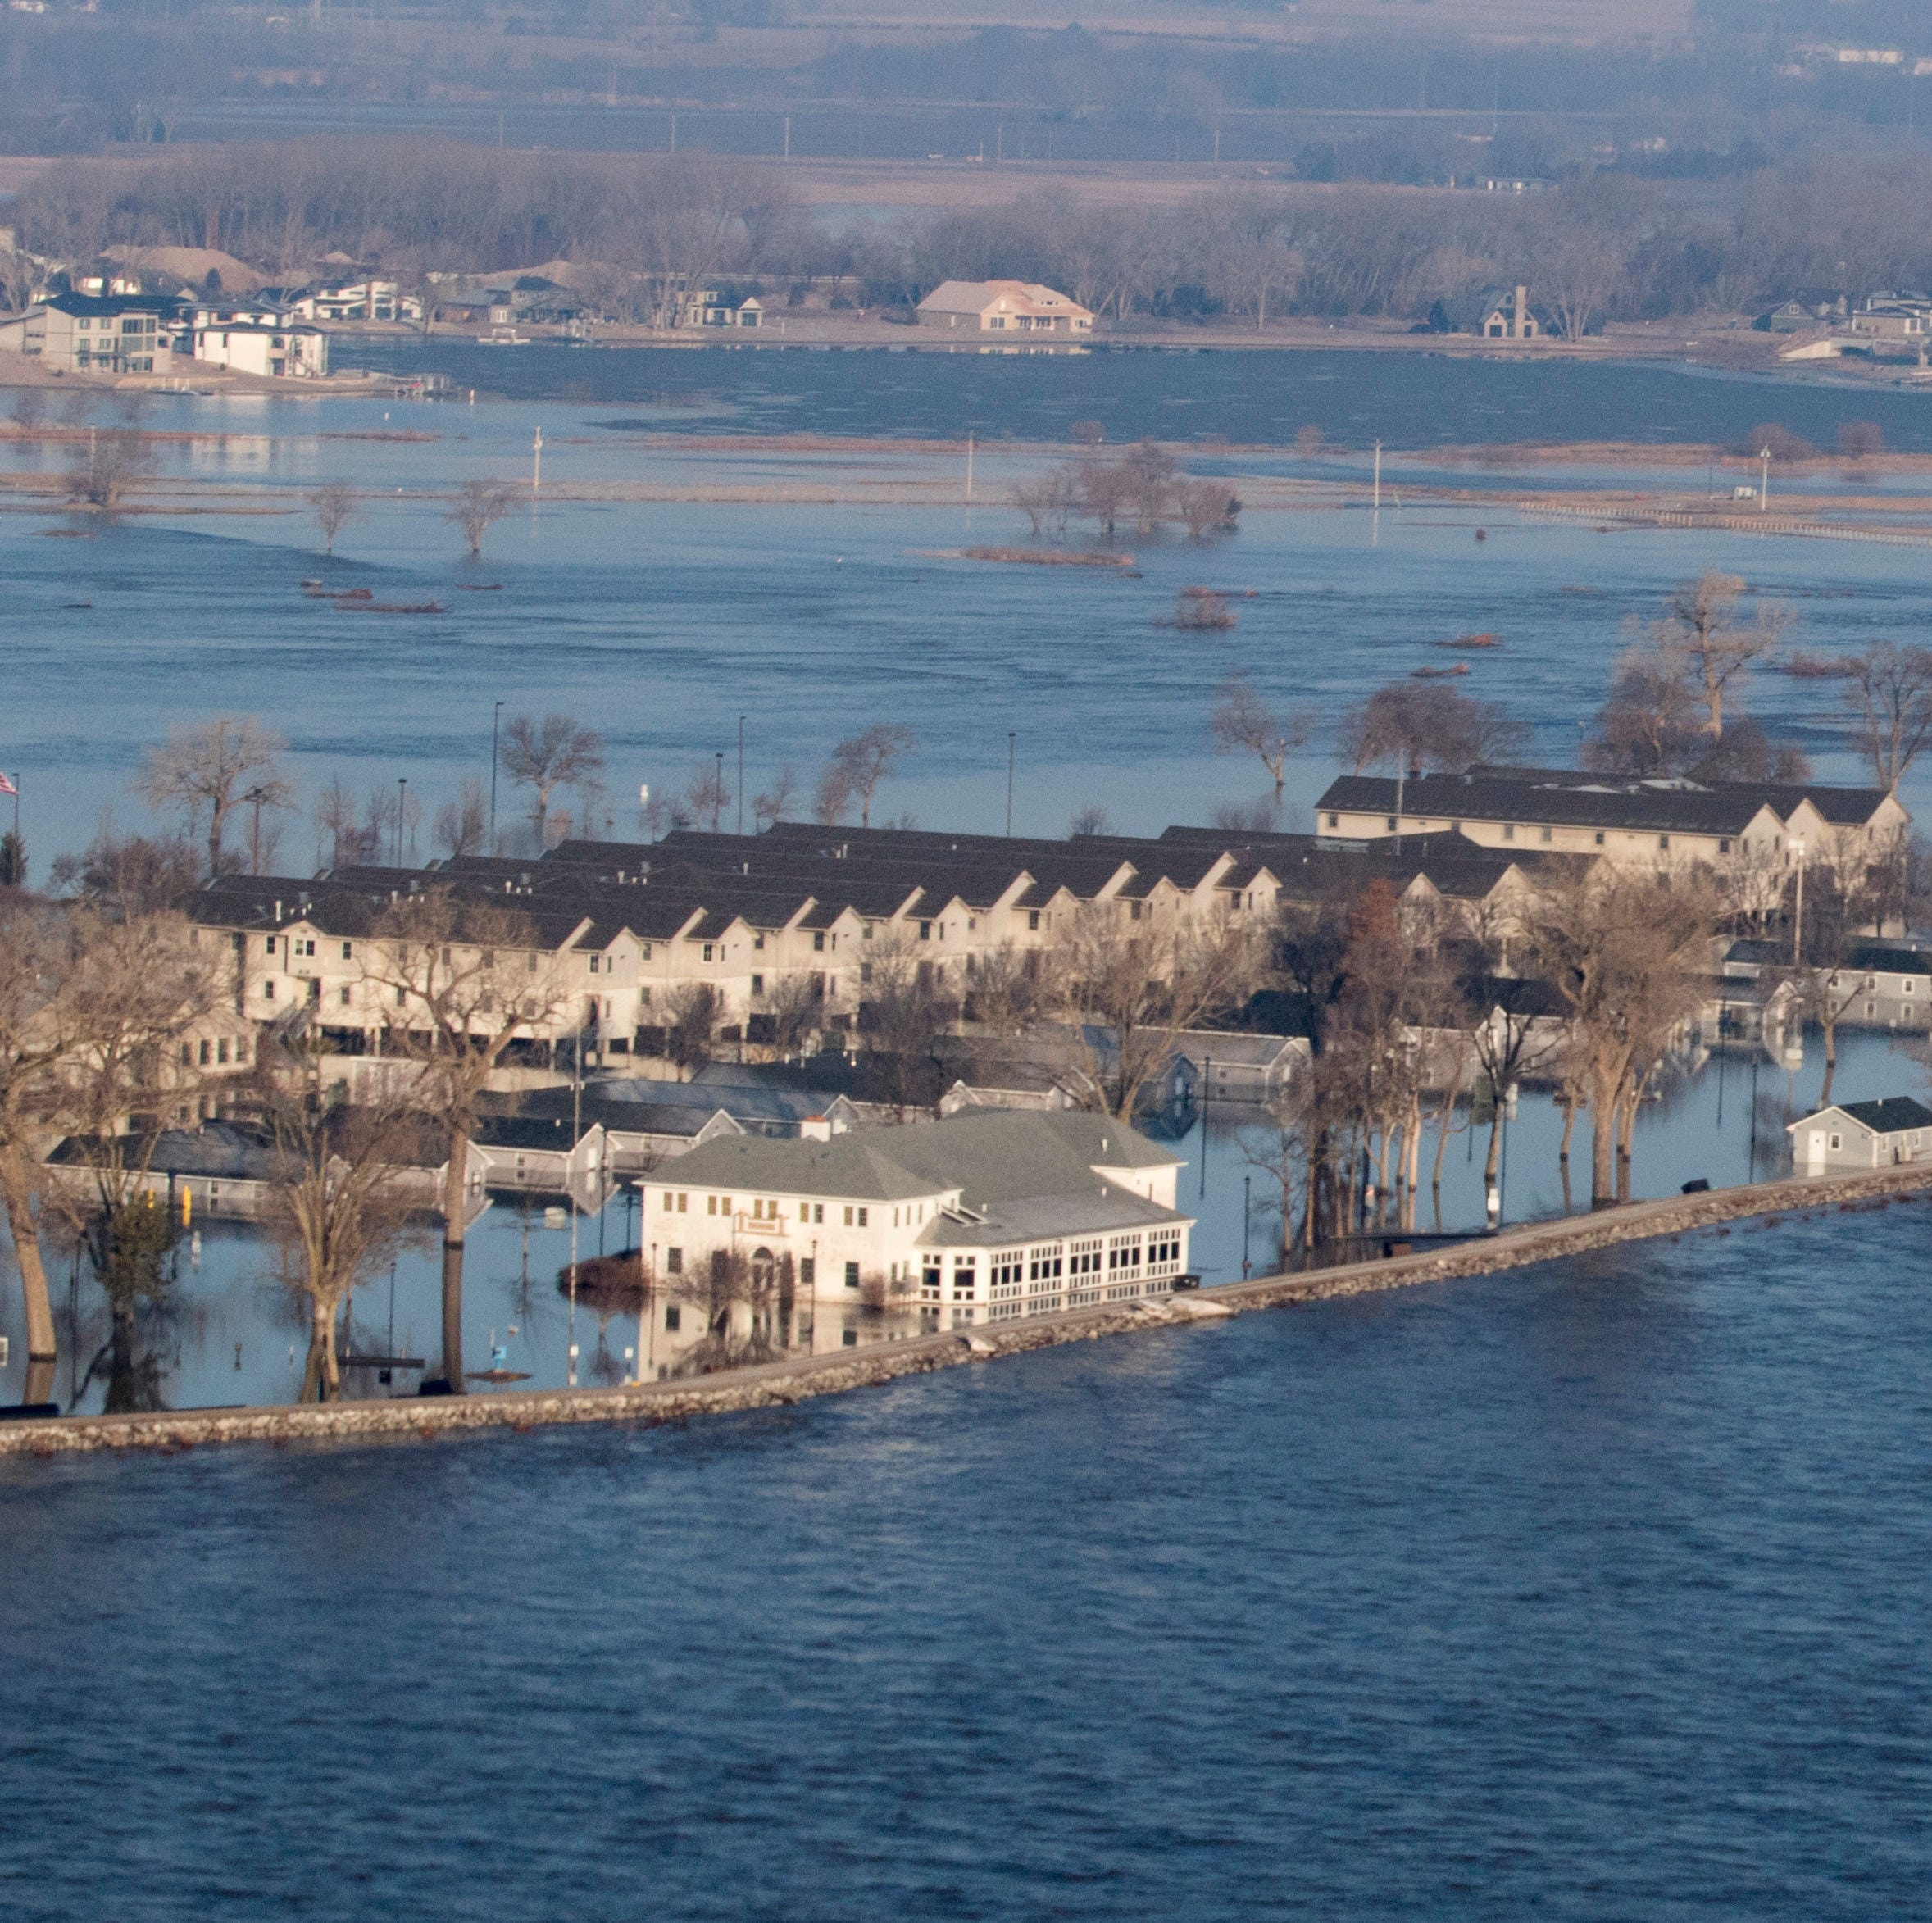 Midwest flooding 2019: Live look from drone flyover March 20